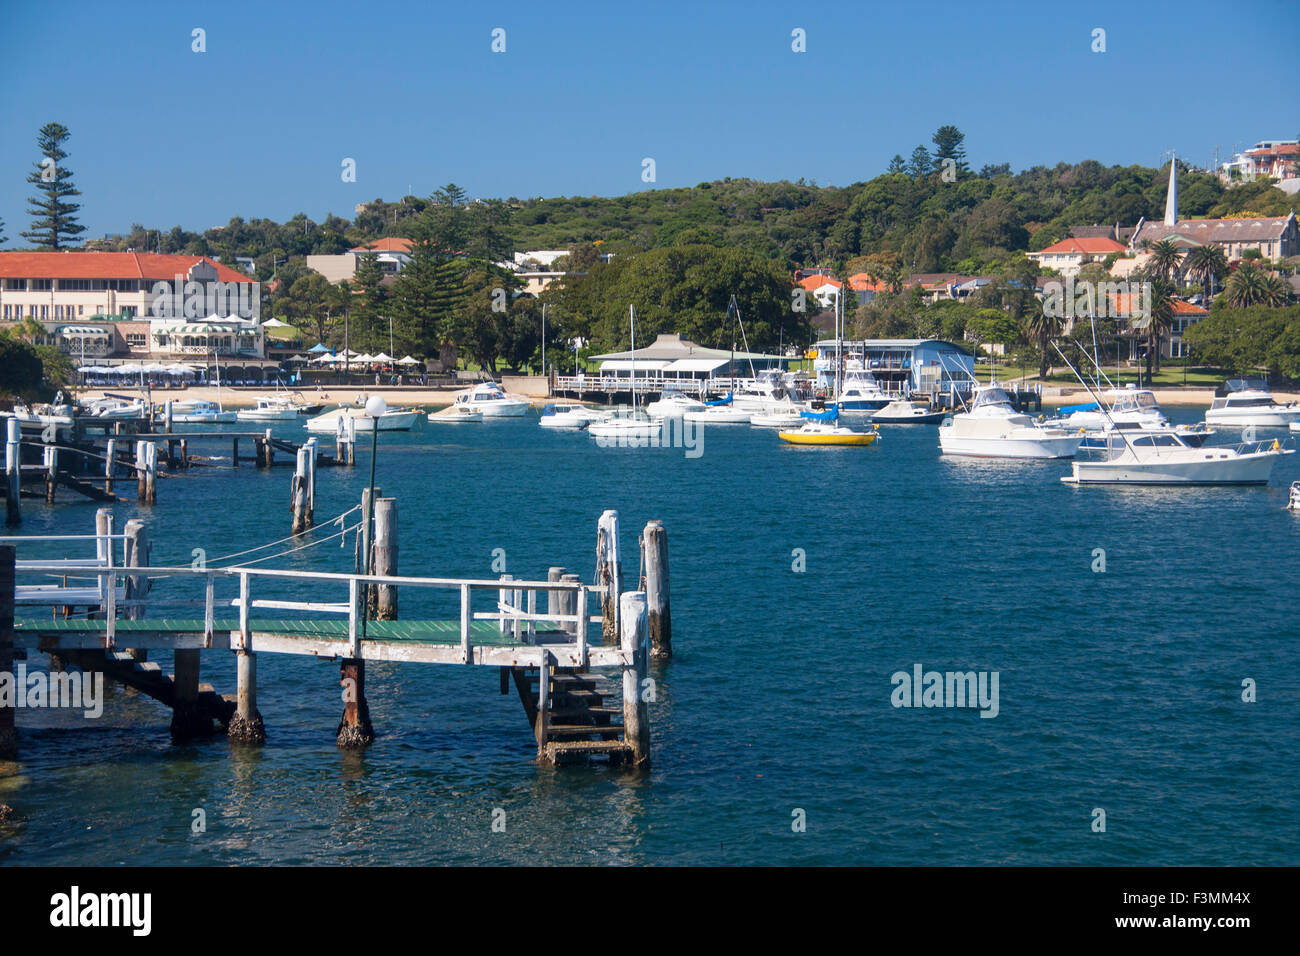 Watsons Bay jetty, boats and beach Eastern Suburbs Sydney HArbour Sydney New South Wales NSW Australia - Stock Image